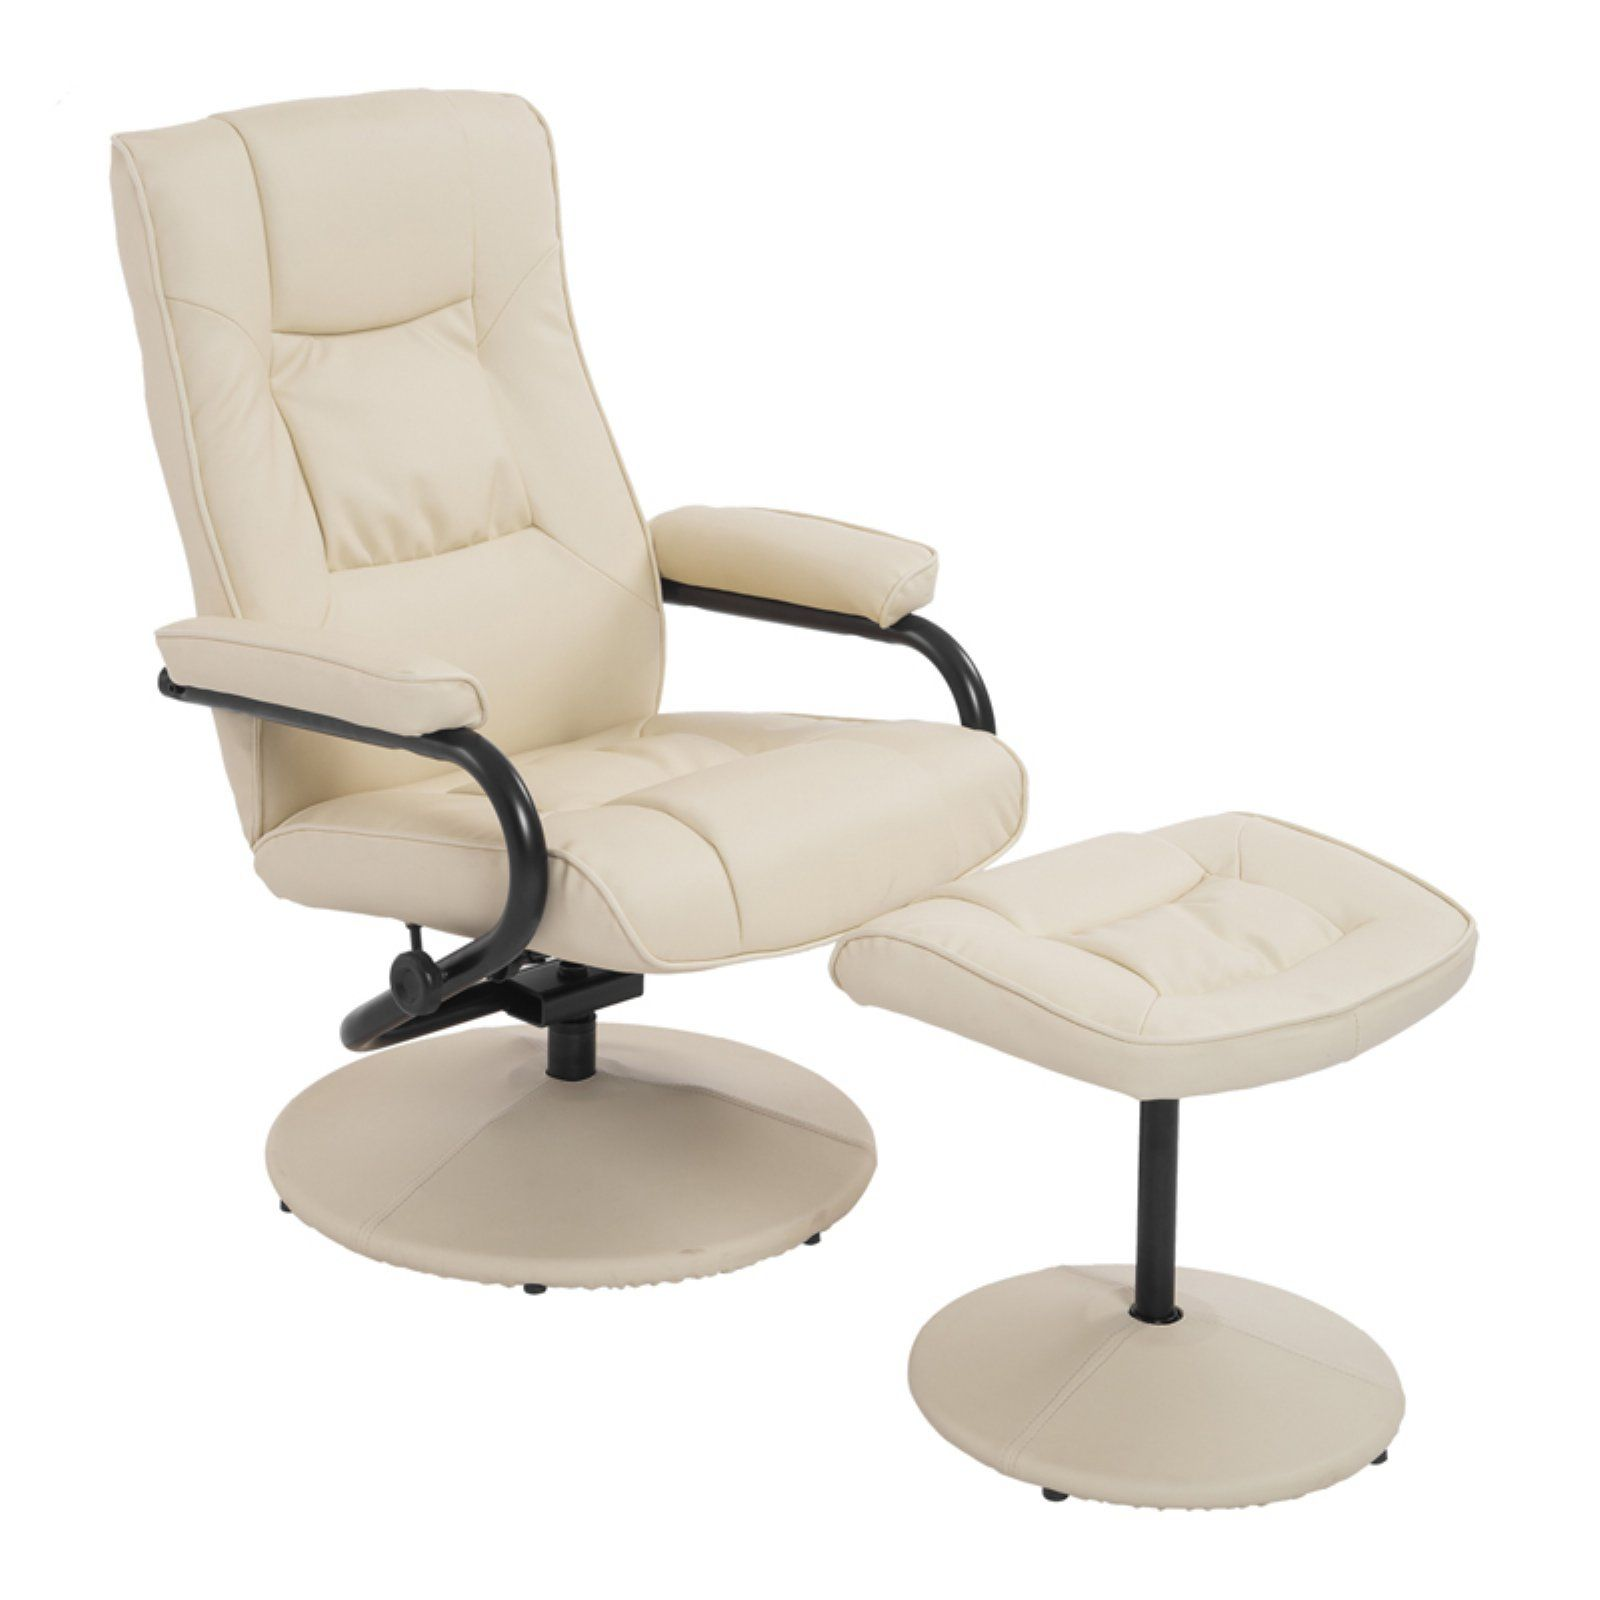 Excellent Homcom 2 Piece Faux Leather Recliner And Ottoman Set Cream Unemploymentrelief Wooden Chair Designs For Living Room Unemploymentrelieforg